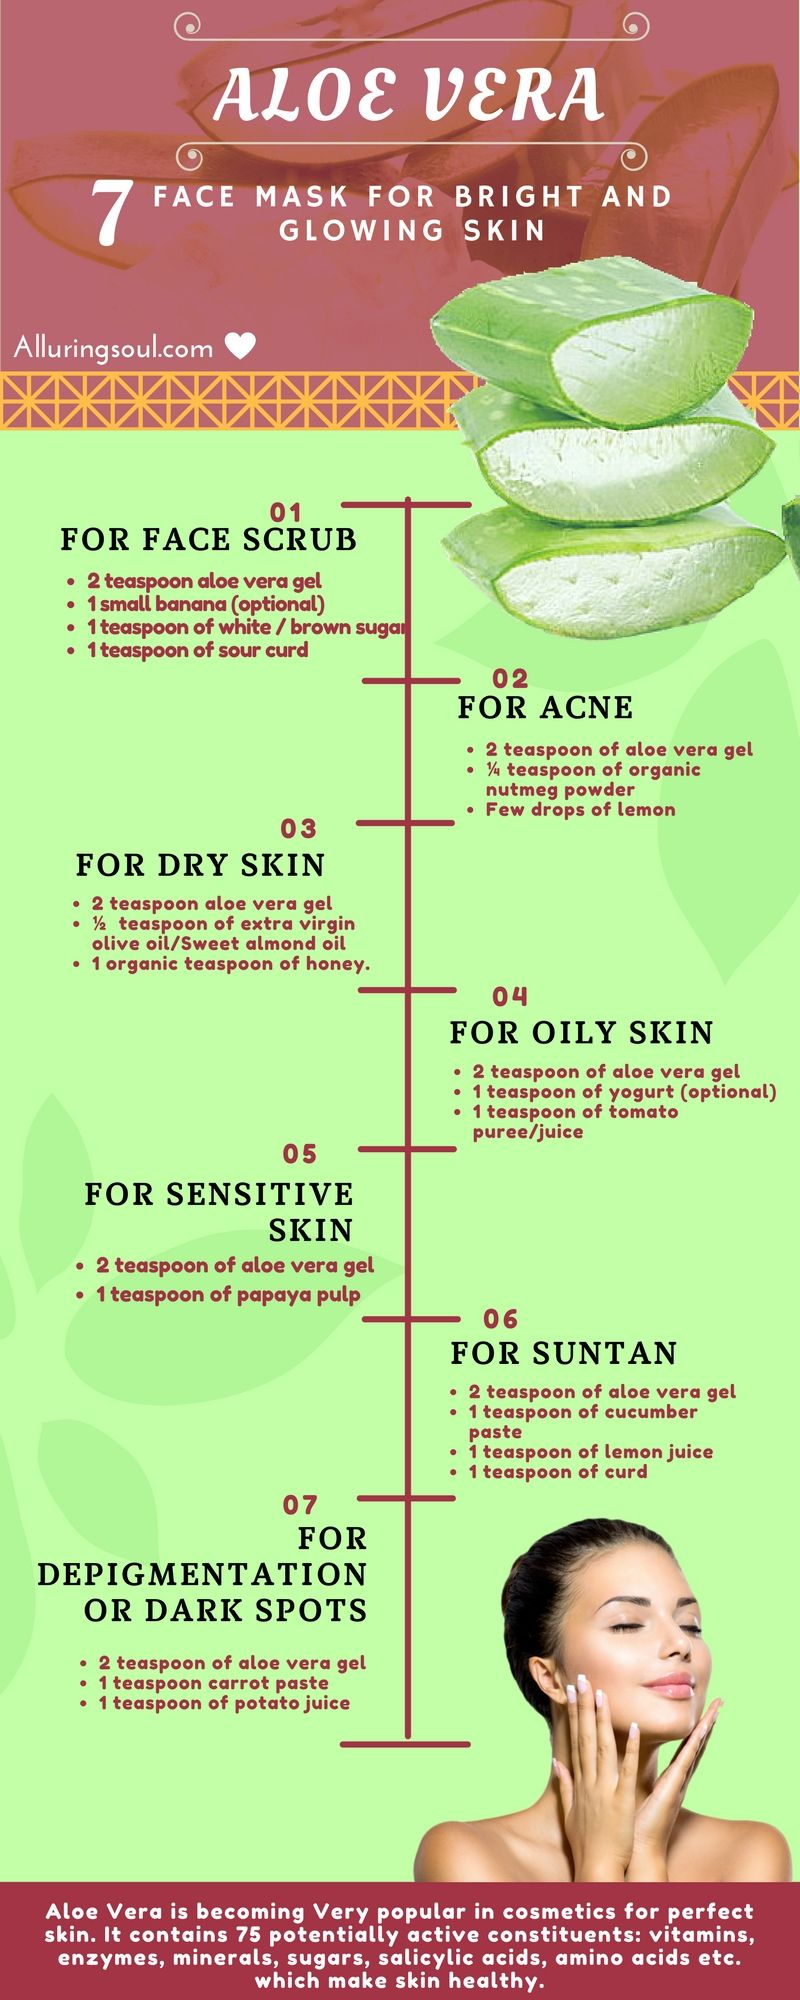 7 Aloe Vera Face Mask For Bright And Beautiful Skin Alluring Soul Aloe Vera Gel Face Gel Face Mask Skin Face Mask